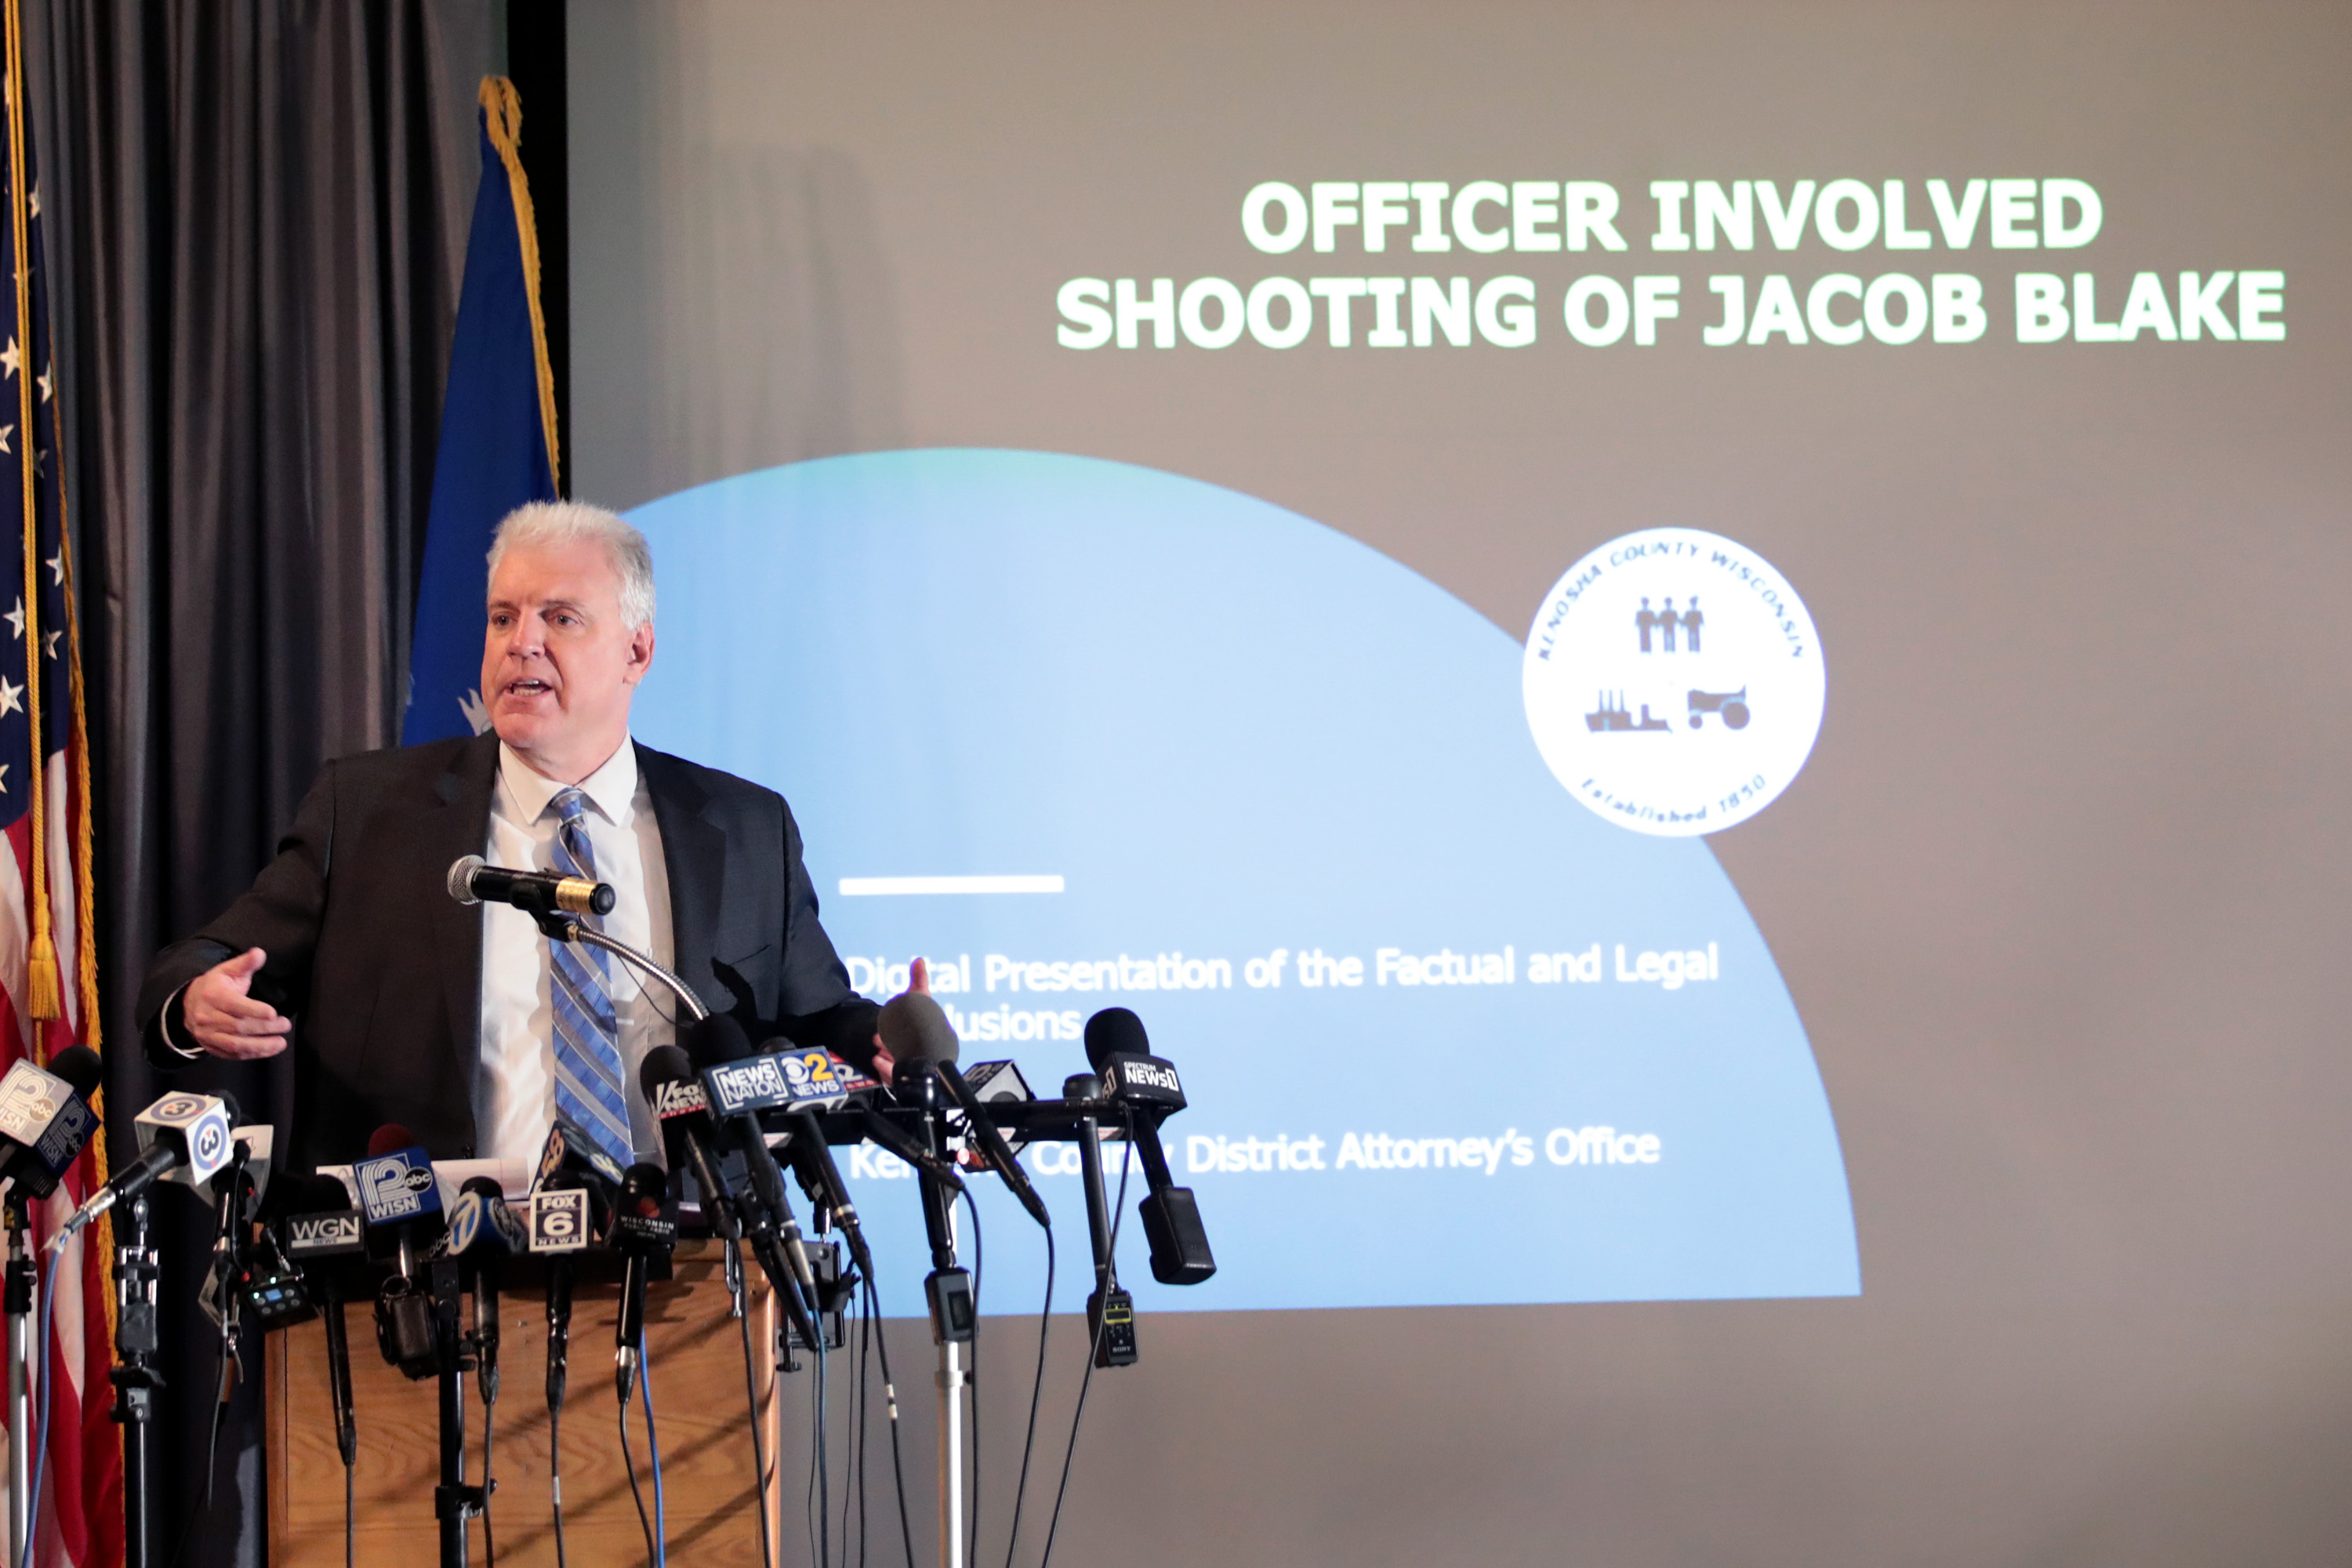 Kenosha County Courthouse District Attorney Michael Graveley announces no charges would be filed against Police Officer Rusten Sheskey for the shooting of Jacob Blake on January 05, 2021 in Kenosha, Wisconsin. Sheskey shot Jacob Blake 7 times in the back during an incident over the summer which led to several days of rioting and unrest in the city. (Photo by Scott Olson/Getty Images)